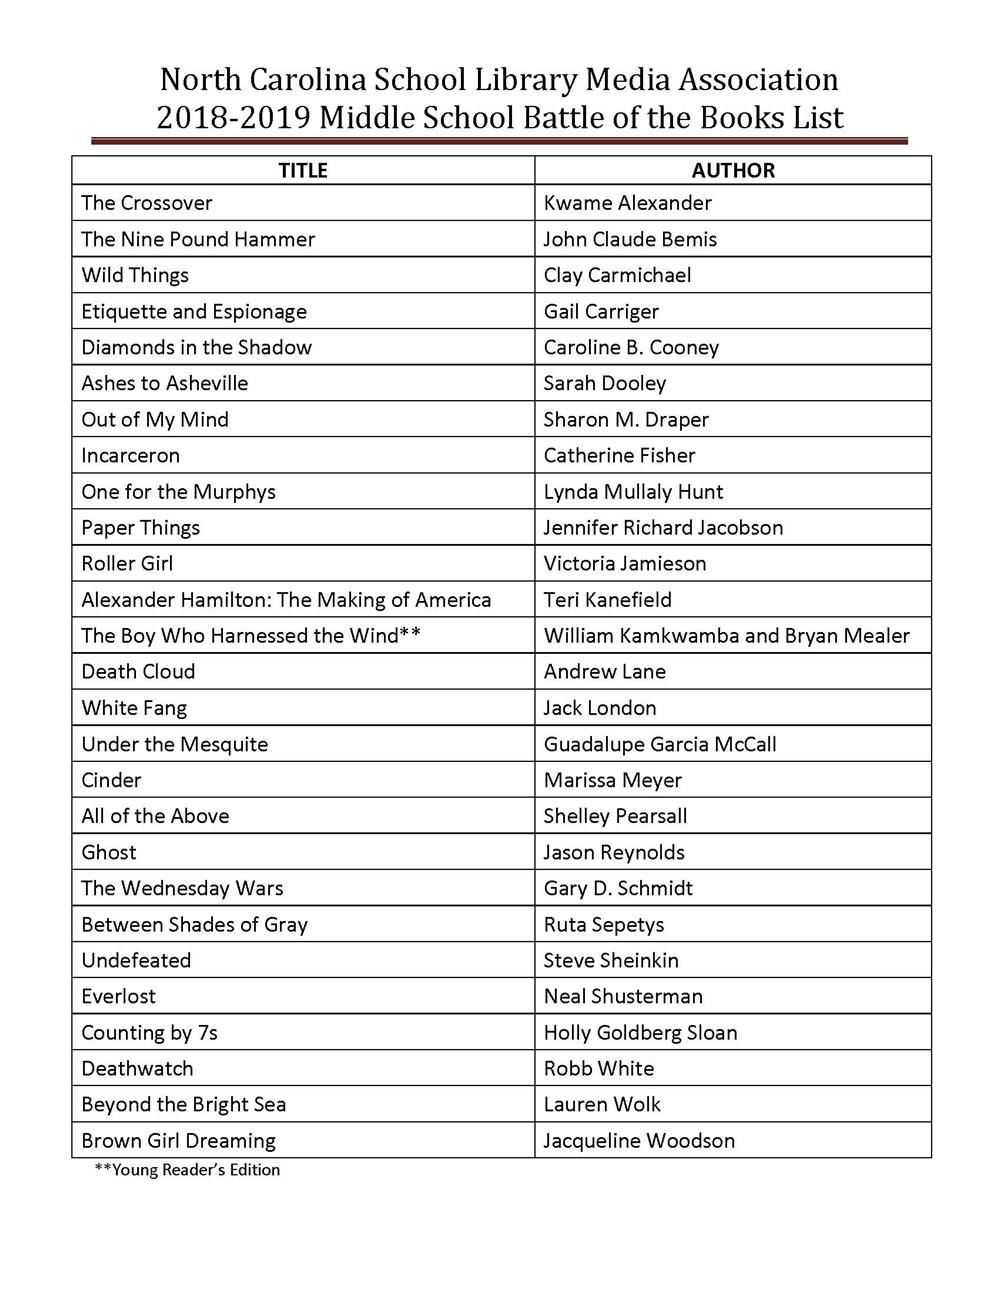 2010 MS Battle of the Books list